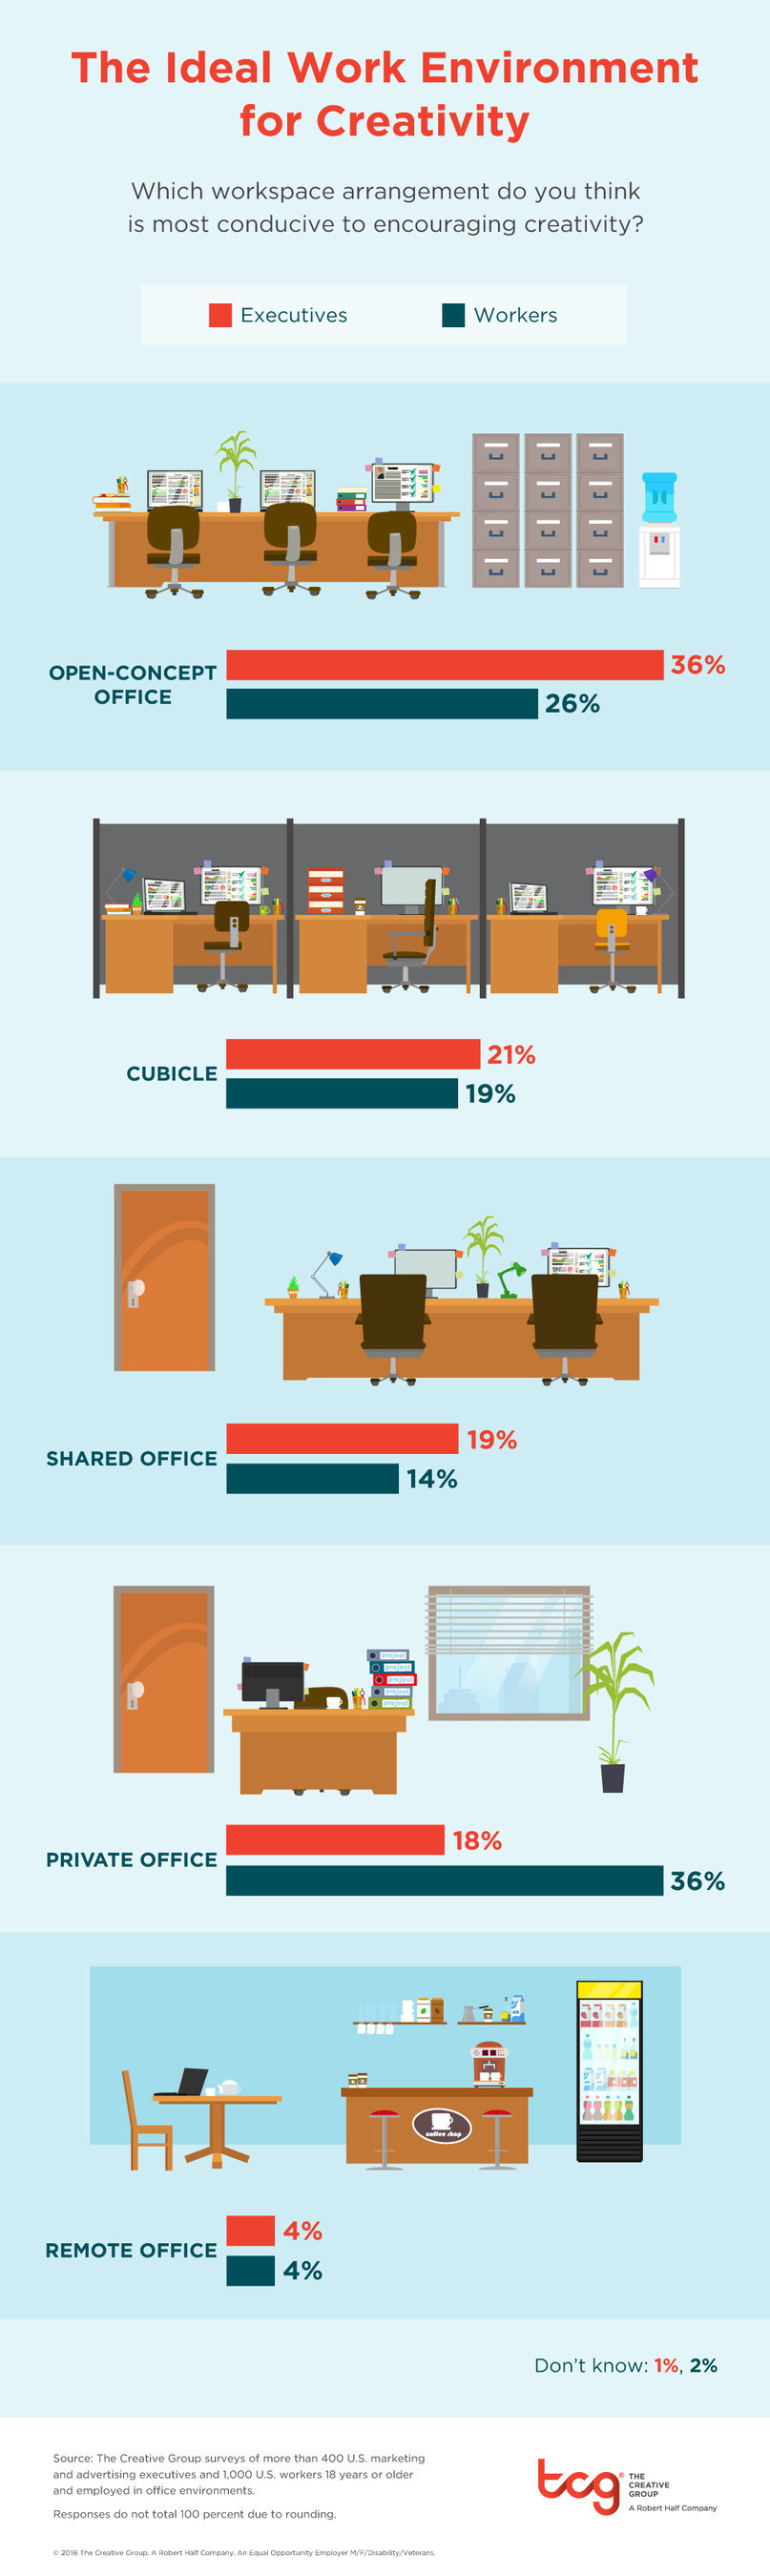 Research from The Creative Group shows executives and workers differ on ideal work environment for creativity (PRNewsFoto/The Creative Group)